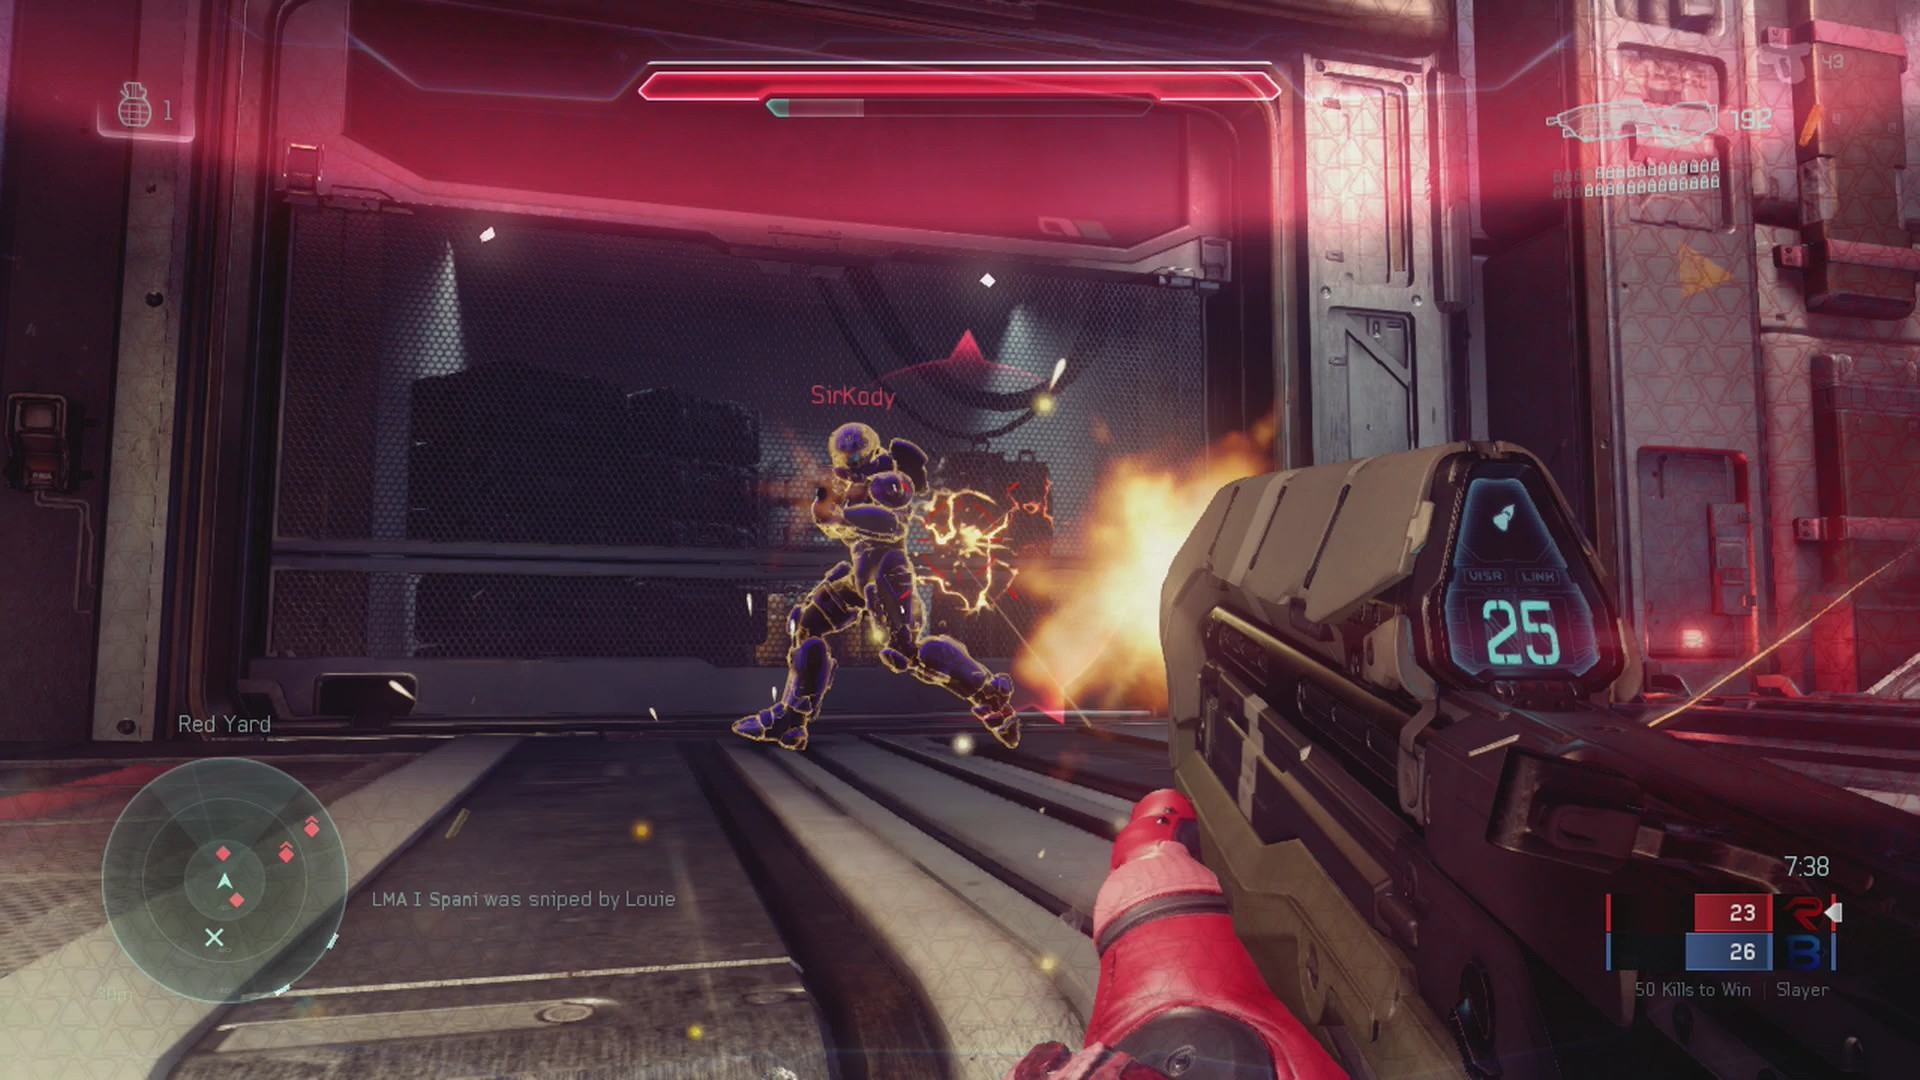 Halo 5: Guardians Multiplayer Beta Gets More Gameplay Videos